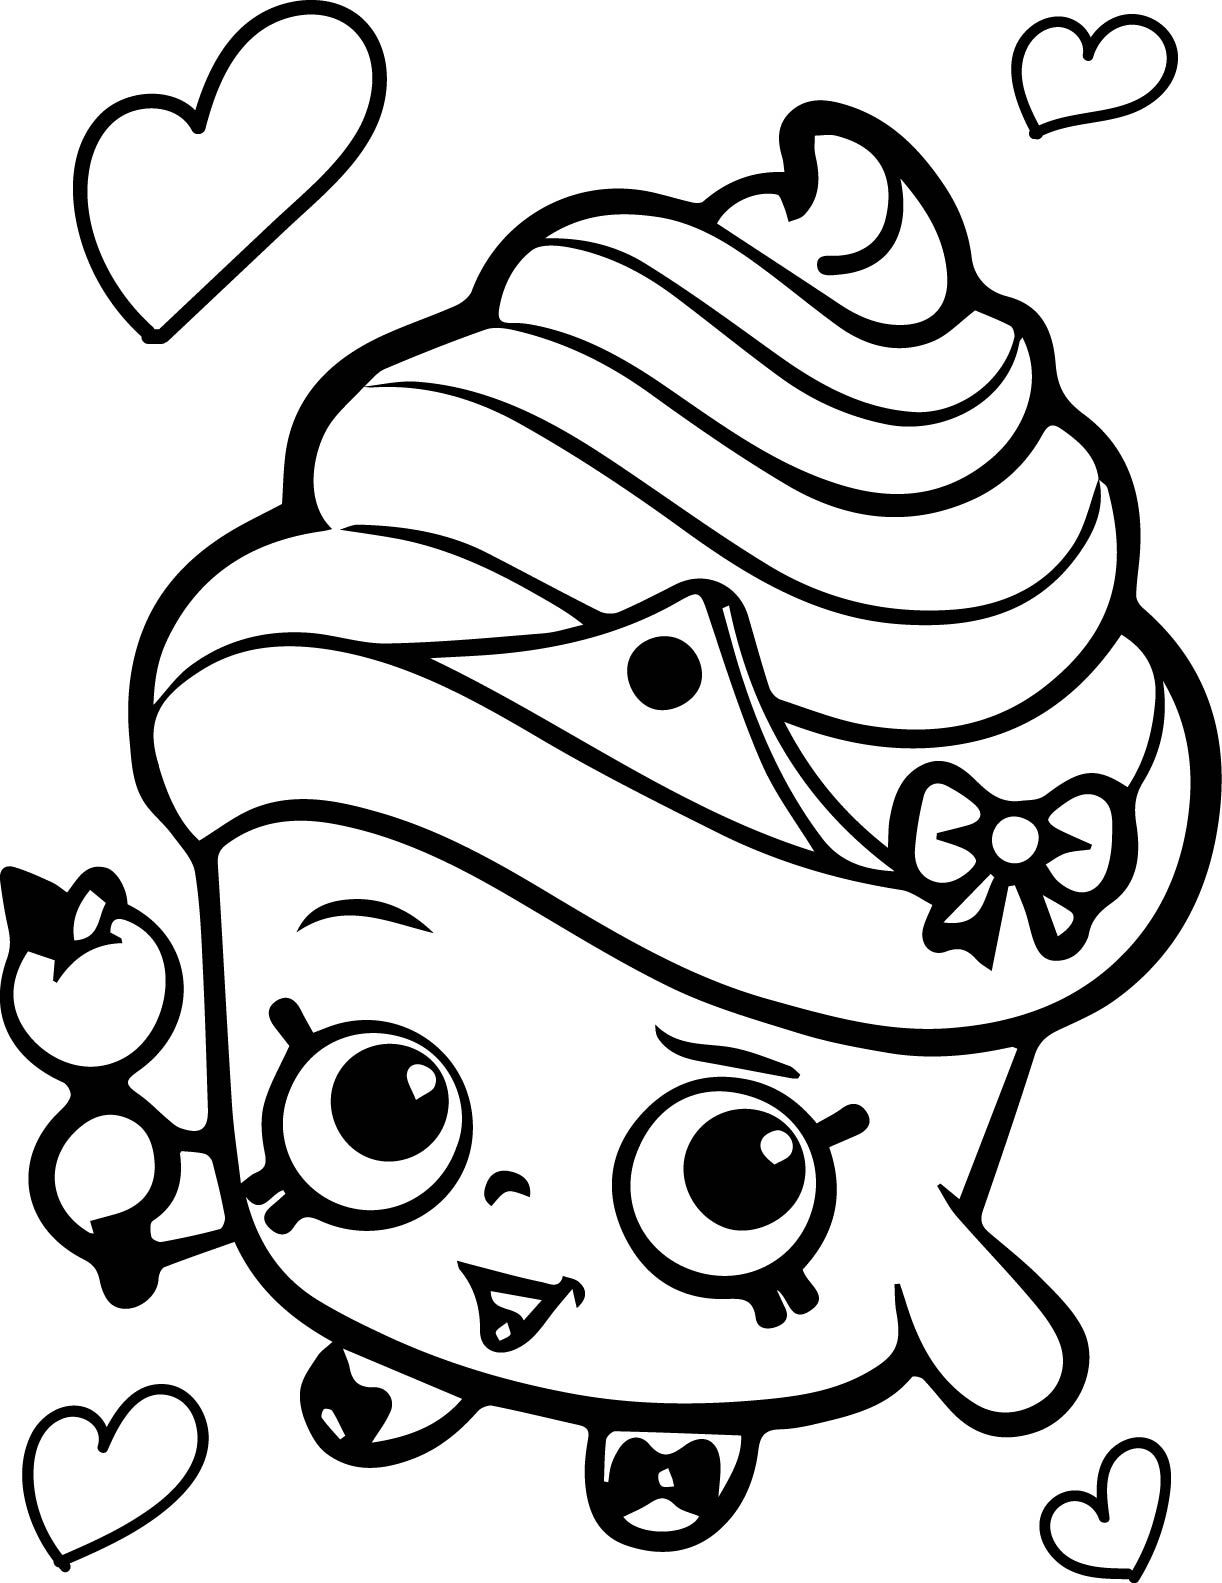 Free Printable Coloring Pages For Kids Shopkins Drawing Find The Newest Extraordinary Images Ideas Especially Some Topics Related To P